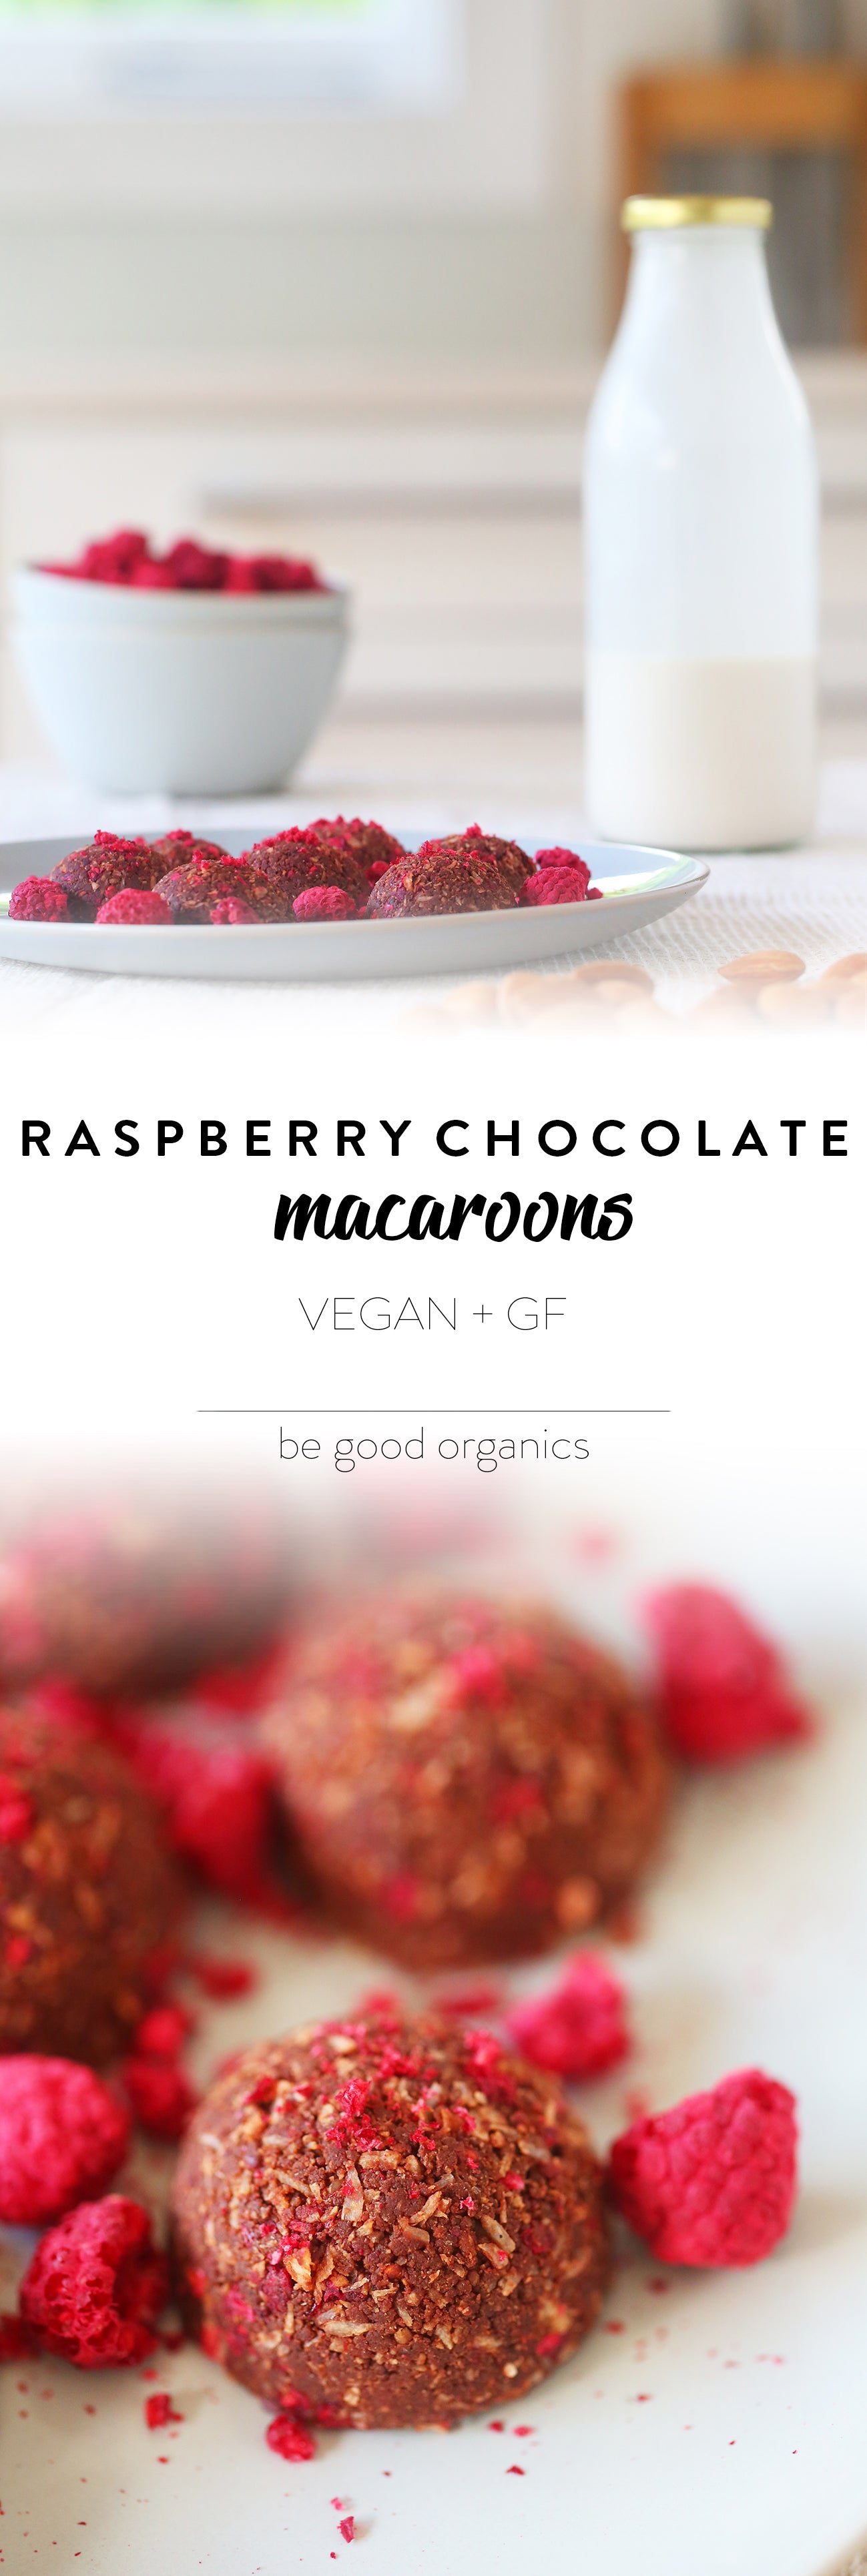 Raspberry and Chocolate Macaroons - Be Good Organics. With coconut, nut milk pulp, almonds, freeze dried raspberries, coconut powder, cacao powder, coconut butter, vanilla.